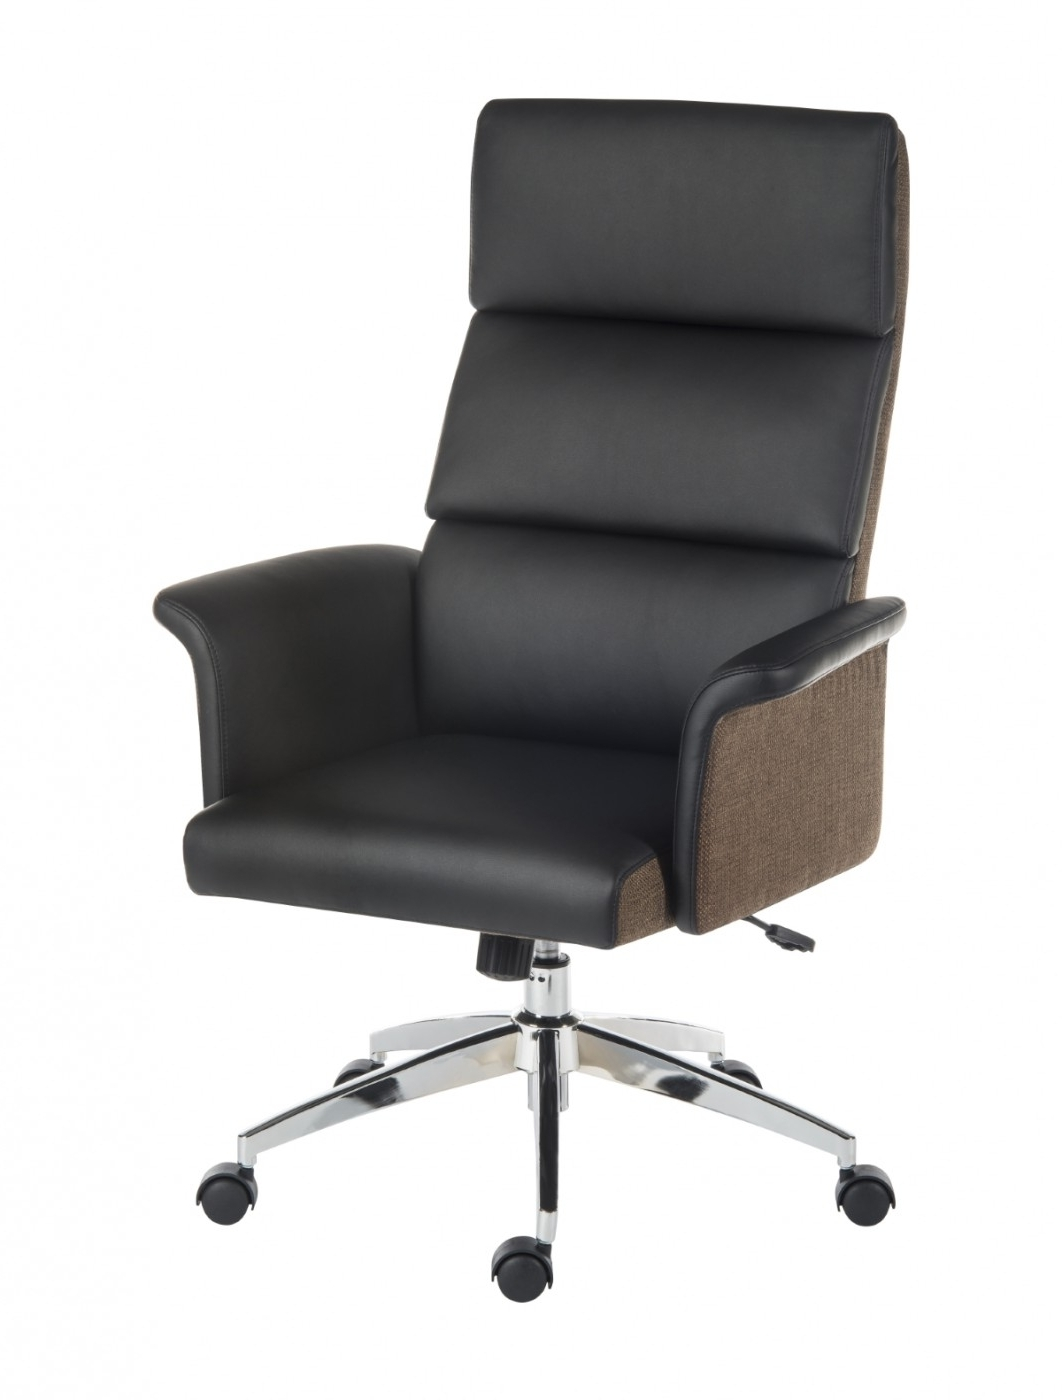 Ergonomic Executive Office Chairs Throughout Well Known Furniture : Executive Office Chair Ergonomic Office Chair' Big And (View 15 of 20)